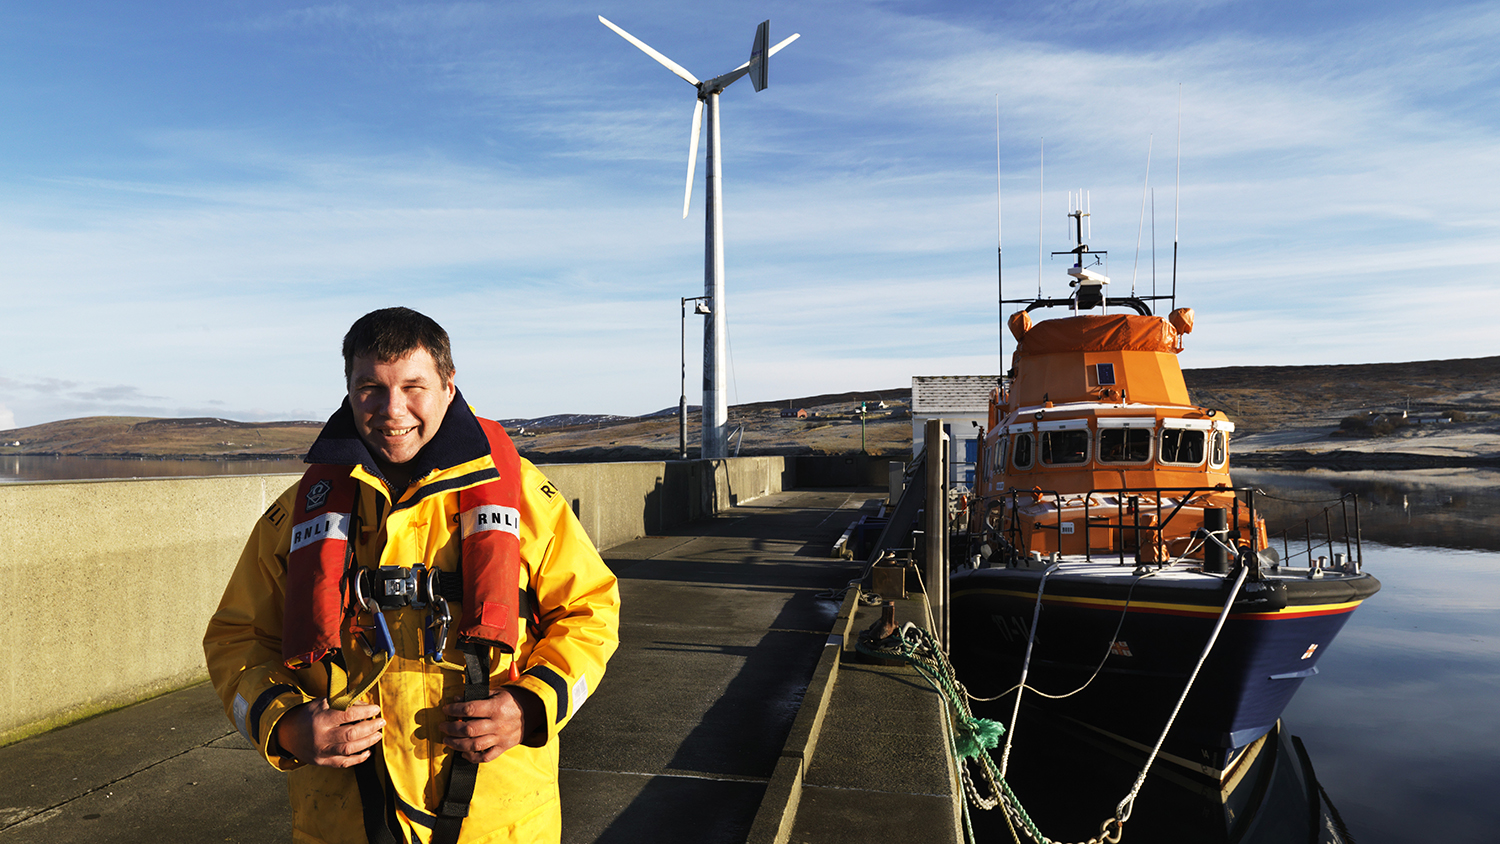 Aith RNLI Mechanic Kevin Henry with the station's Severn class lifeboat, Charles Lidbury 17-14, and wind turbine in the background